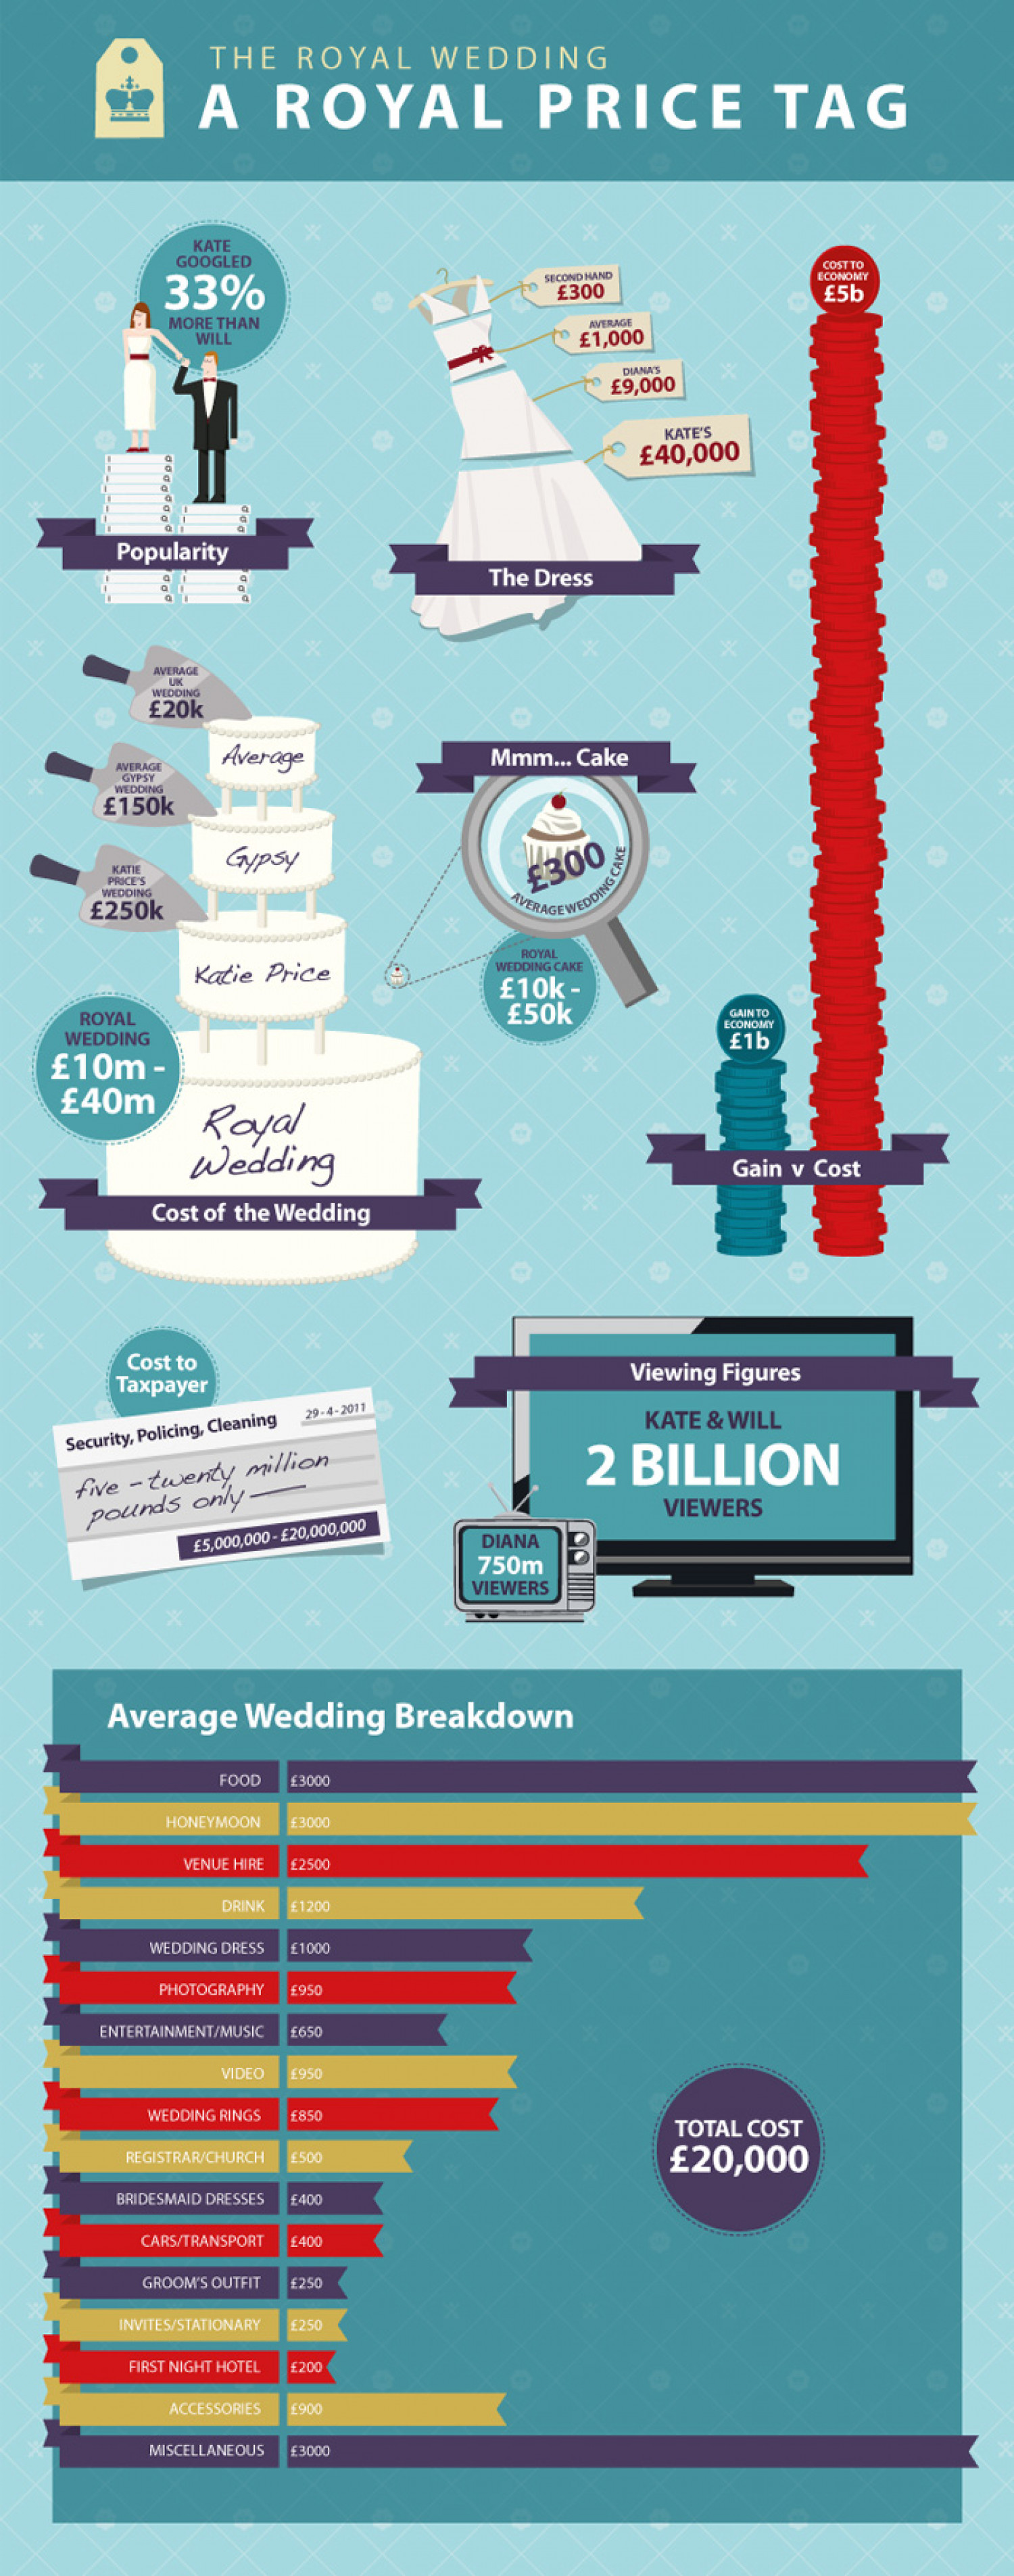 The Royal Wedding - A Royal Price Tag Infographic